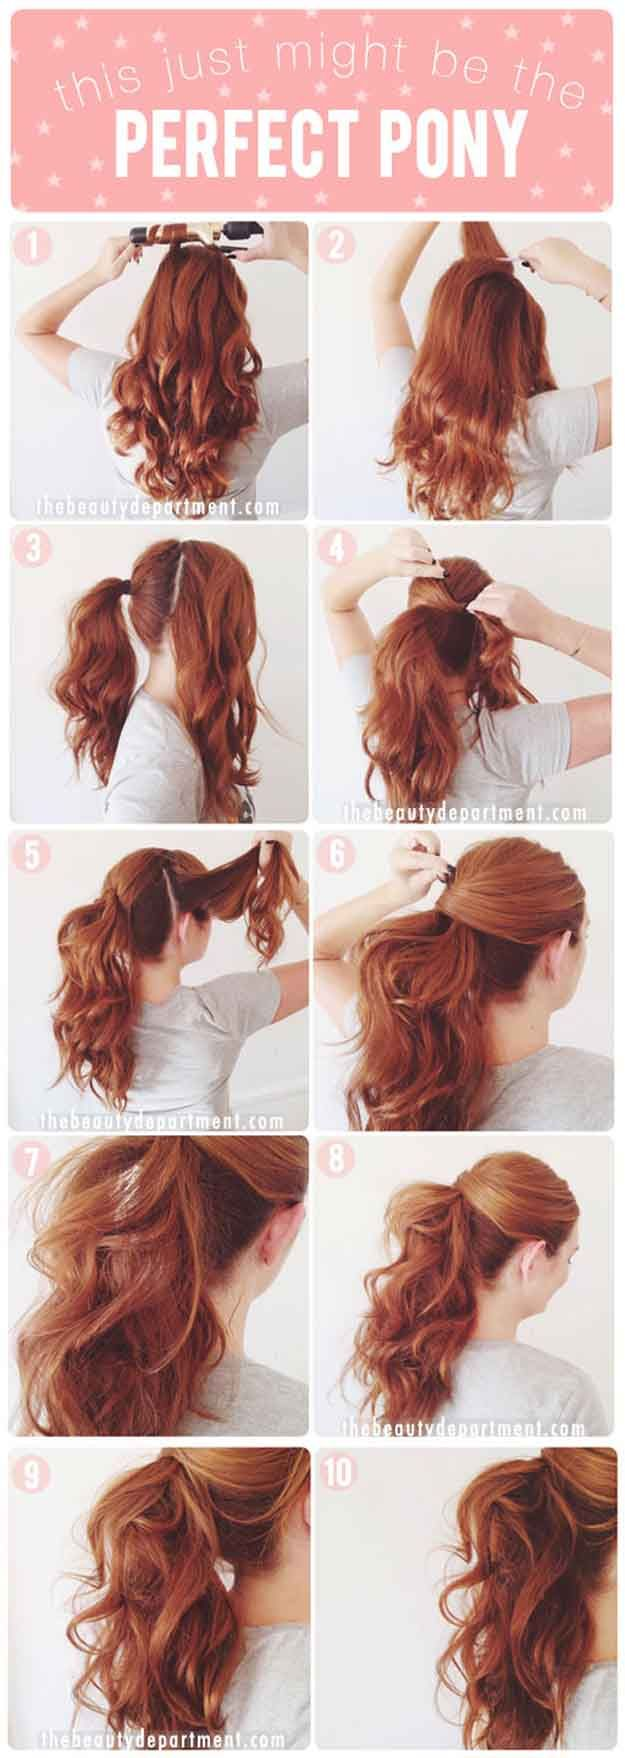 33 Quick and Easy Hairstyles for Straight Hair | Hair lengths ...